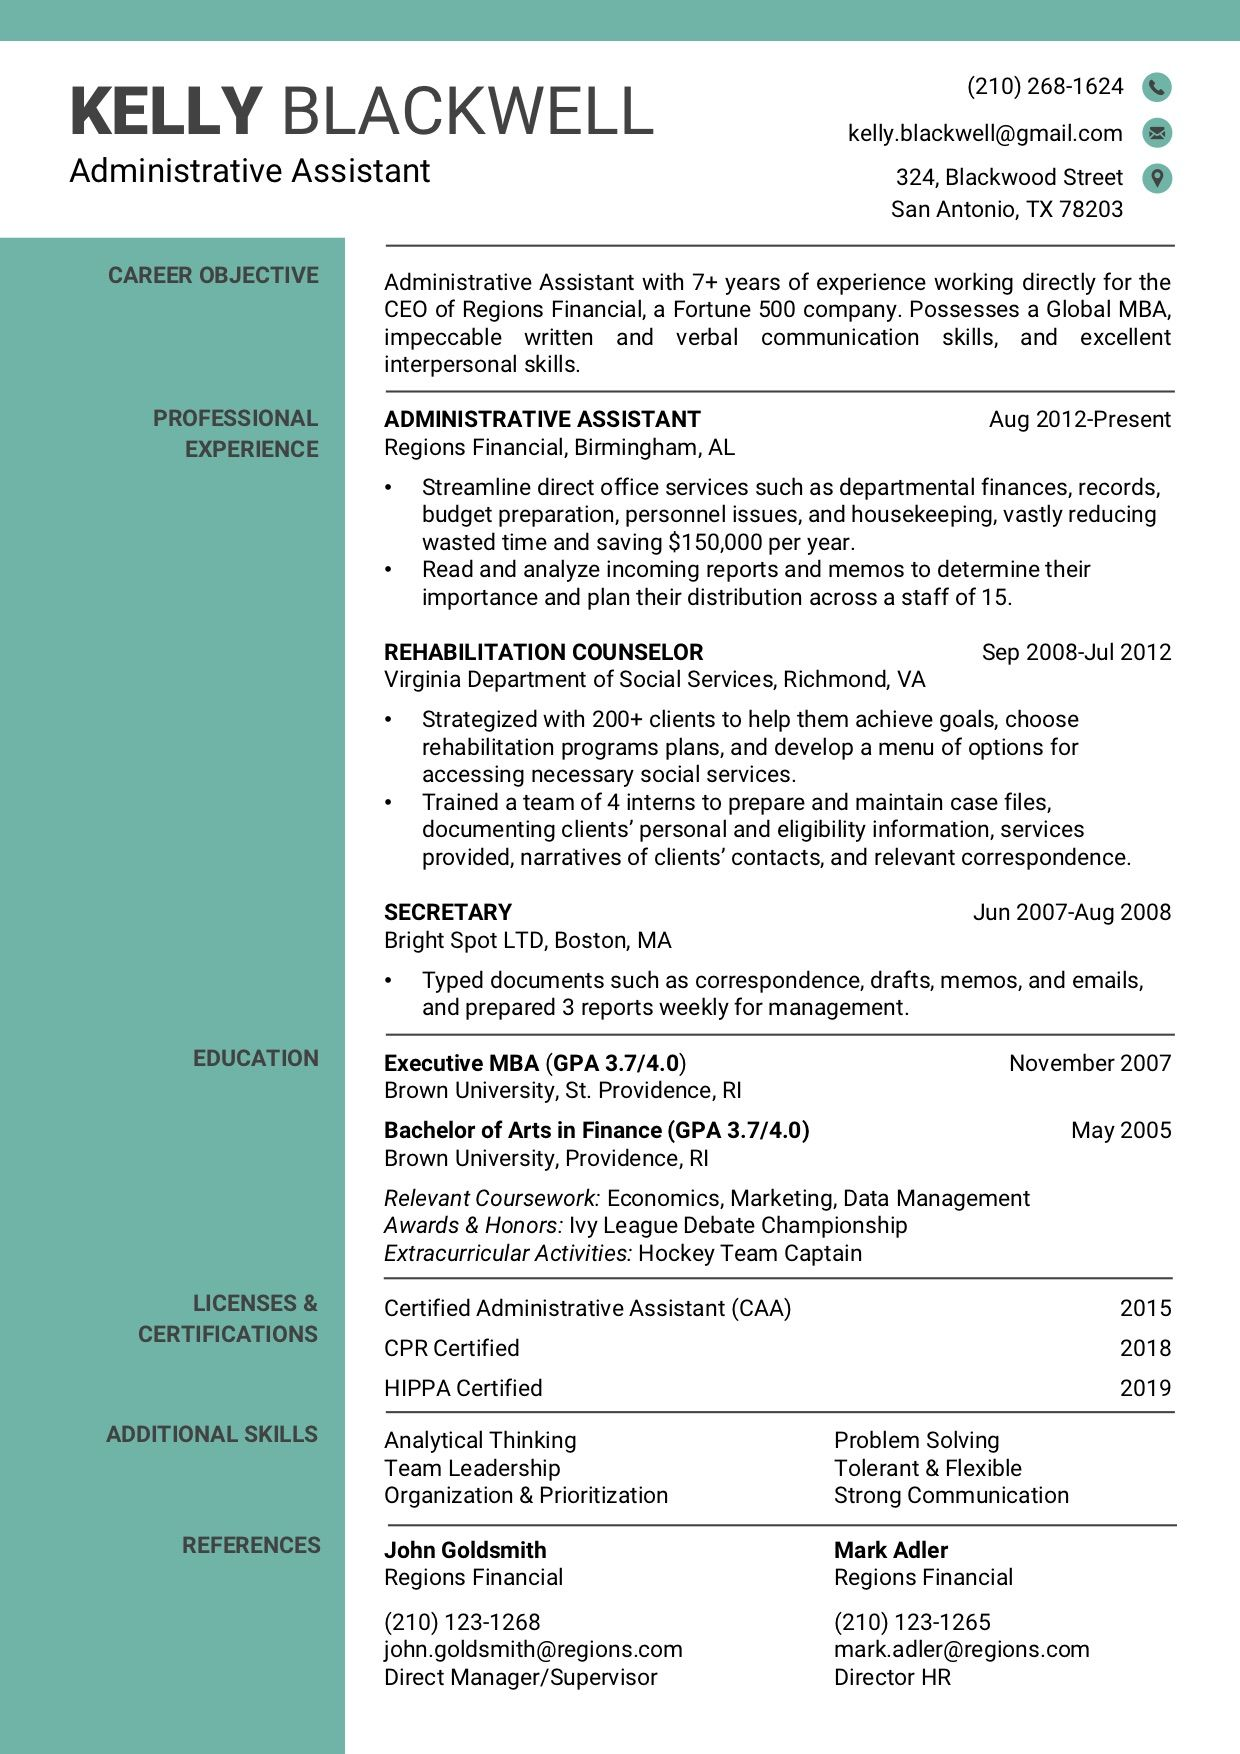 Resume Template 1d Rc Verbal Communication Skills Resume Template Professional Resume Templates